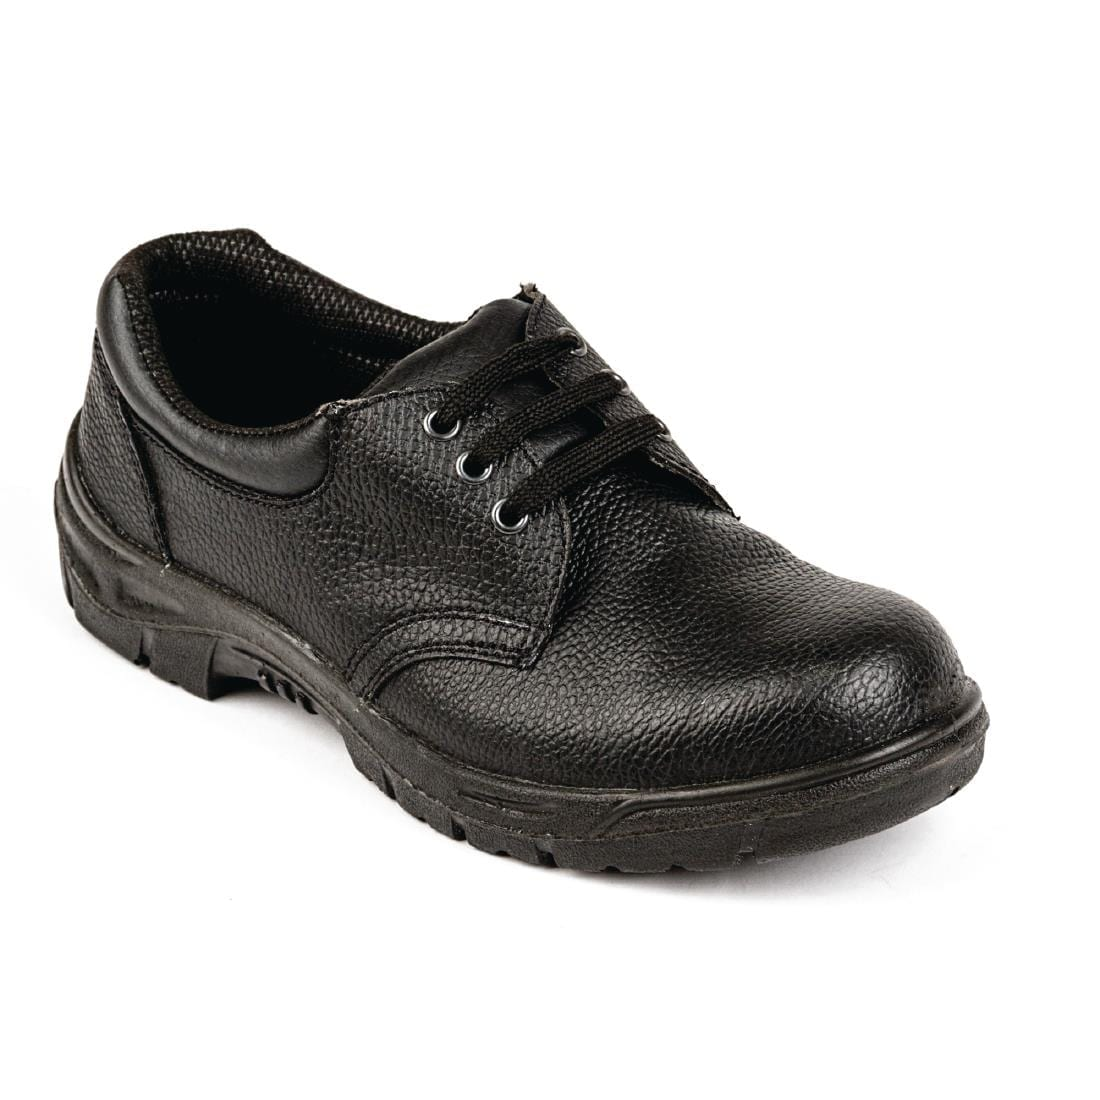 Slipbuster Unisex Safety Shoe Black 42